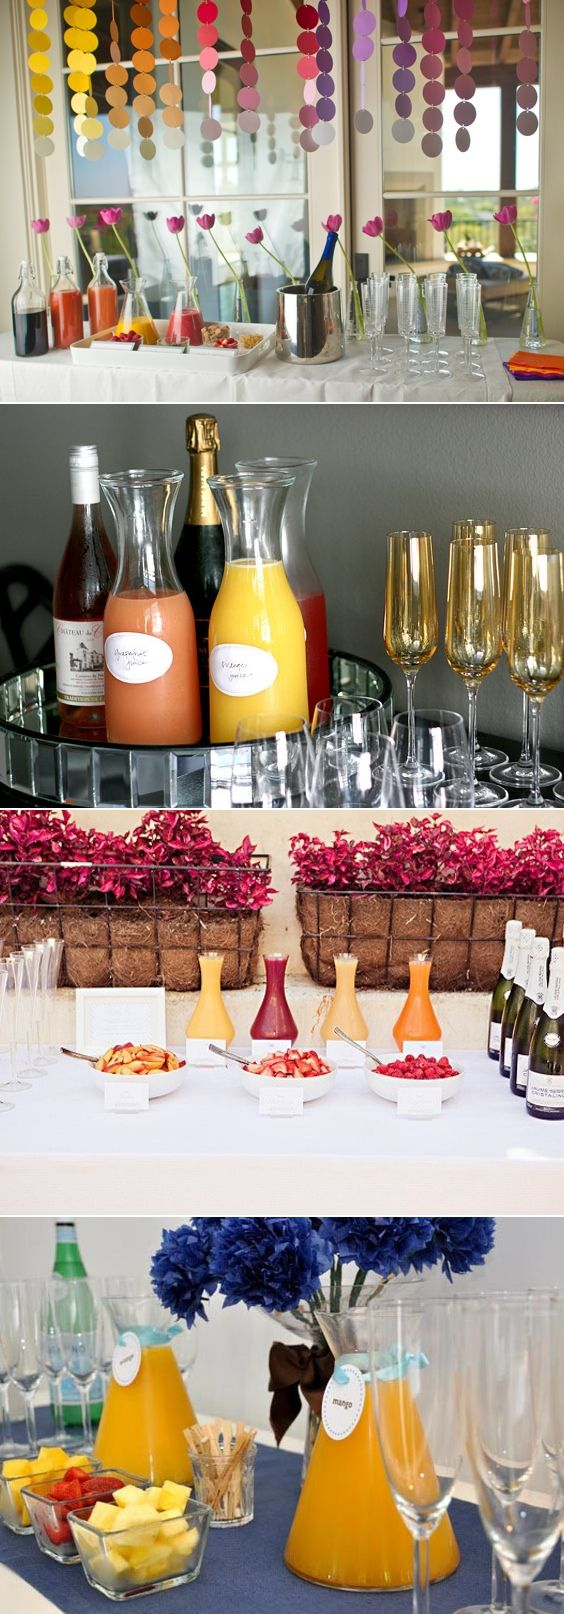 Mimosa bar. We did this for a wedding shower and it was a huge hit!